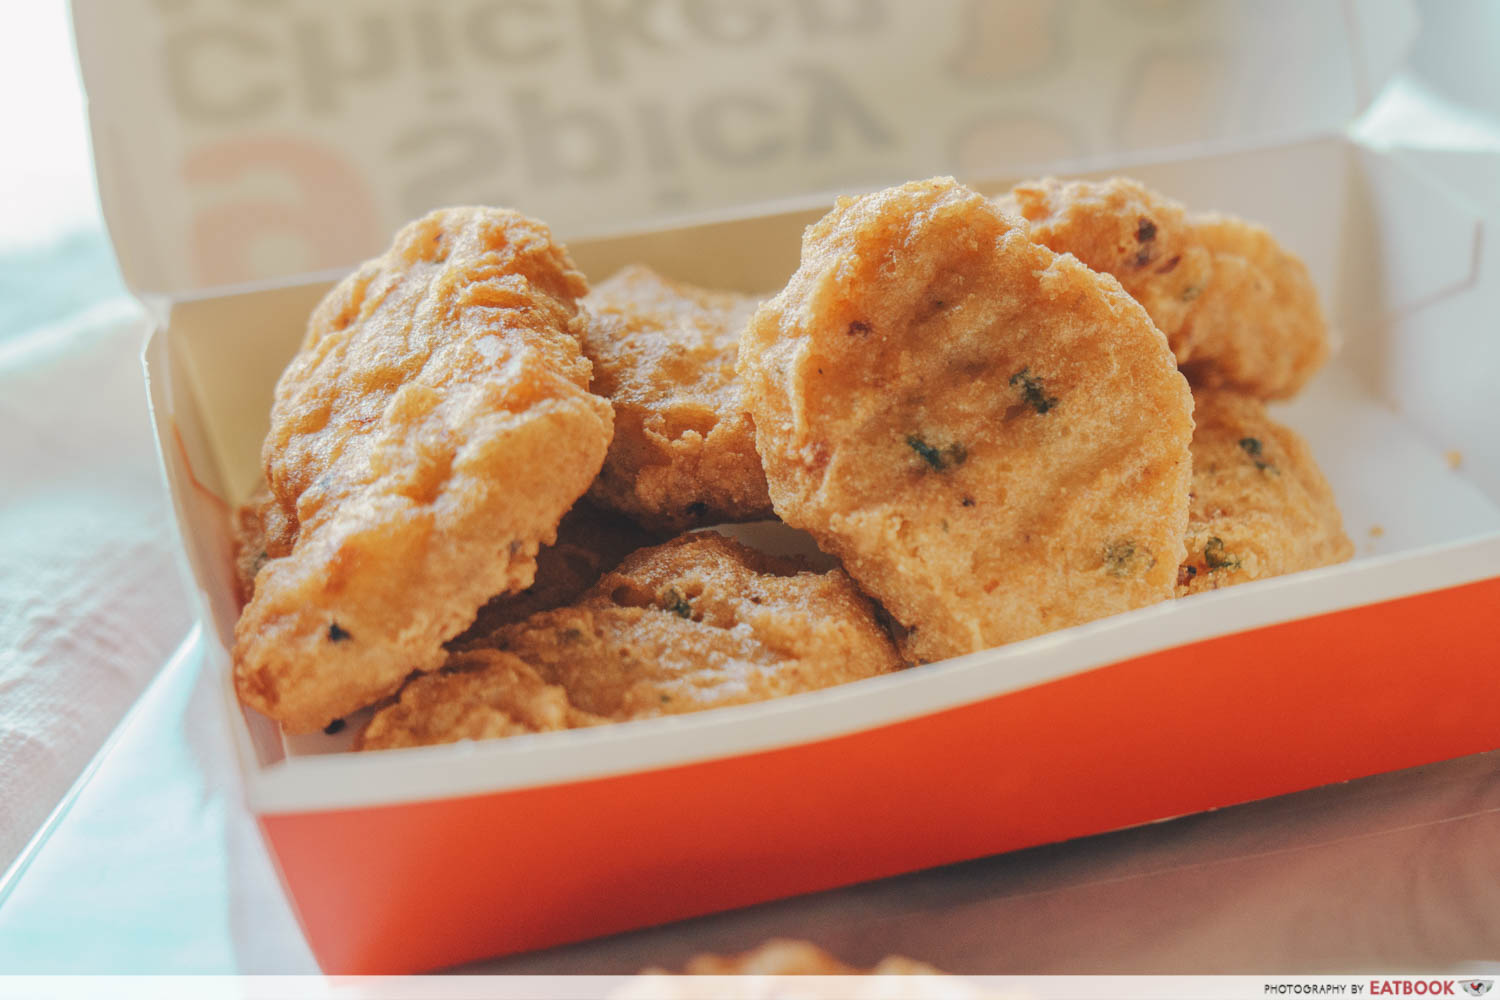 MCDELIVERY NIGHT FEST SPICY NUGGETS 2